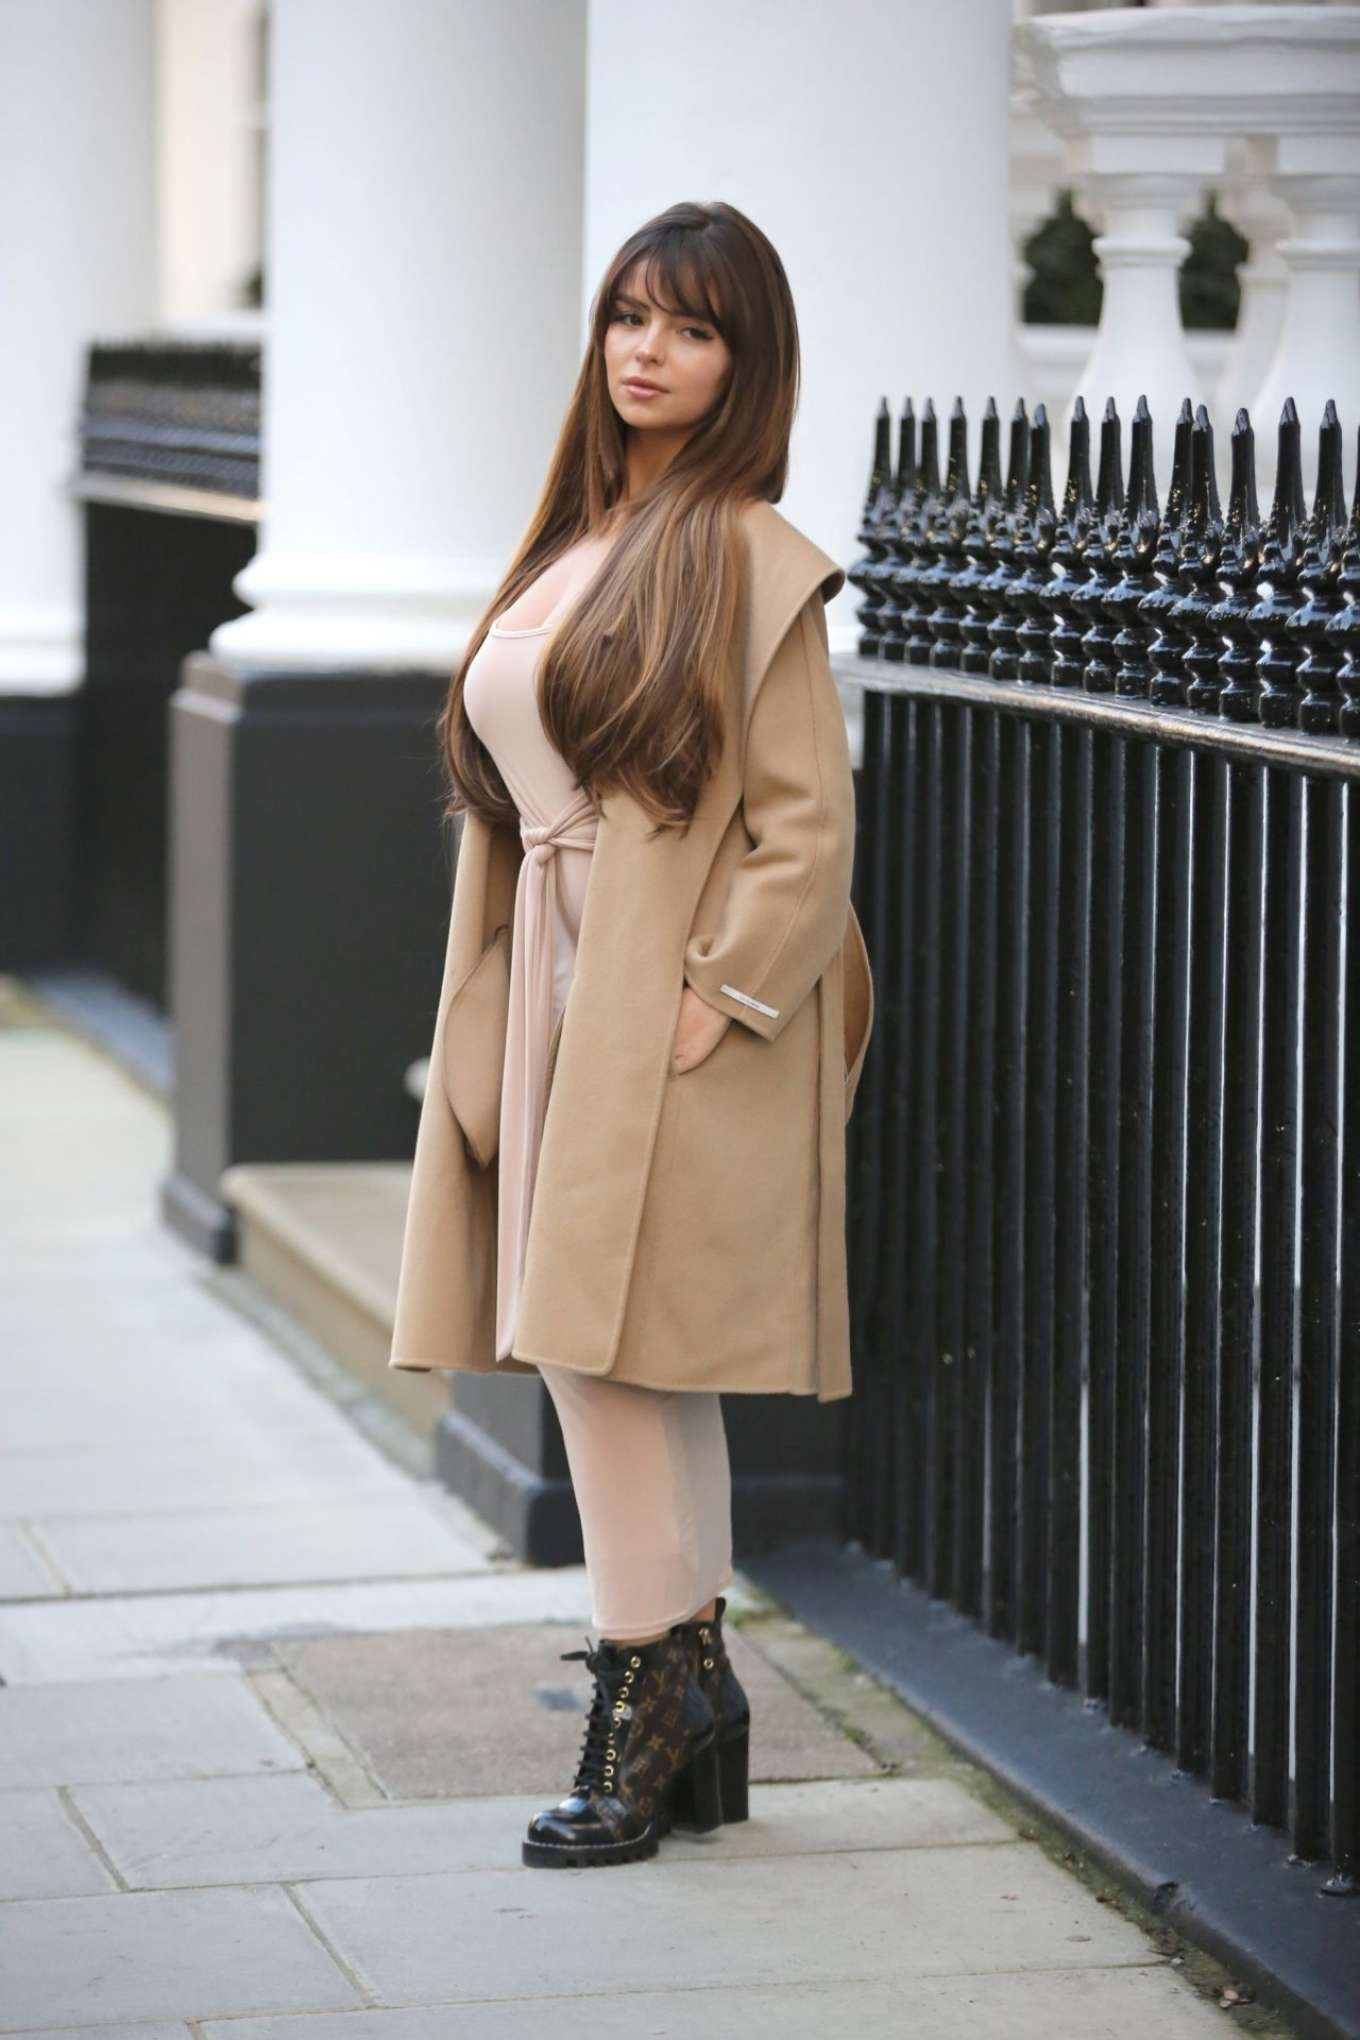 Demi Rose Mawby 2019 : Demi Rose Mawby – Pictured at Pop Up Boutique in London-04